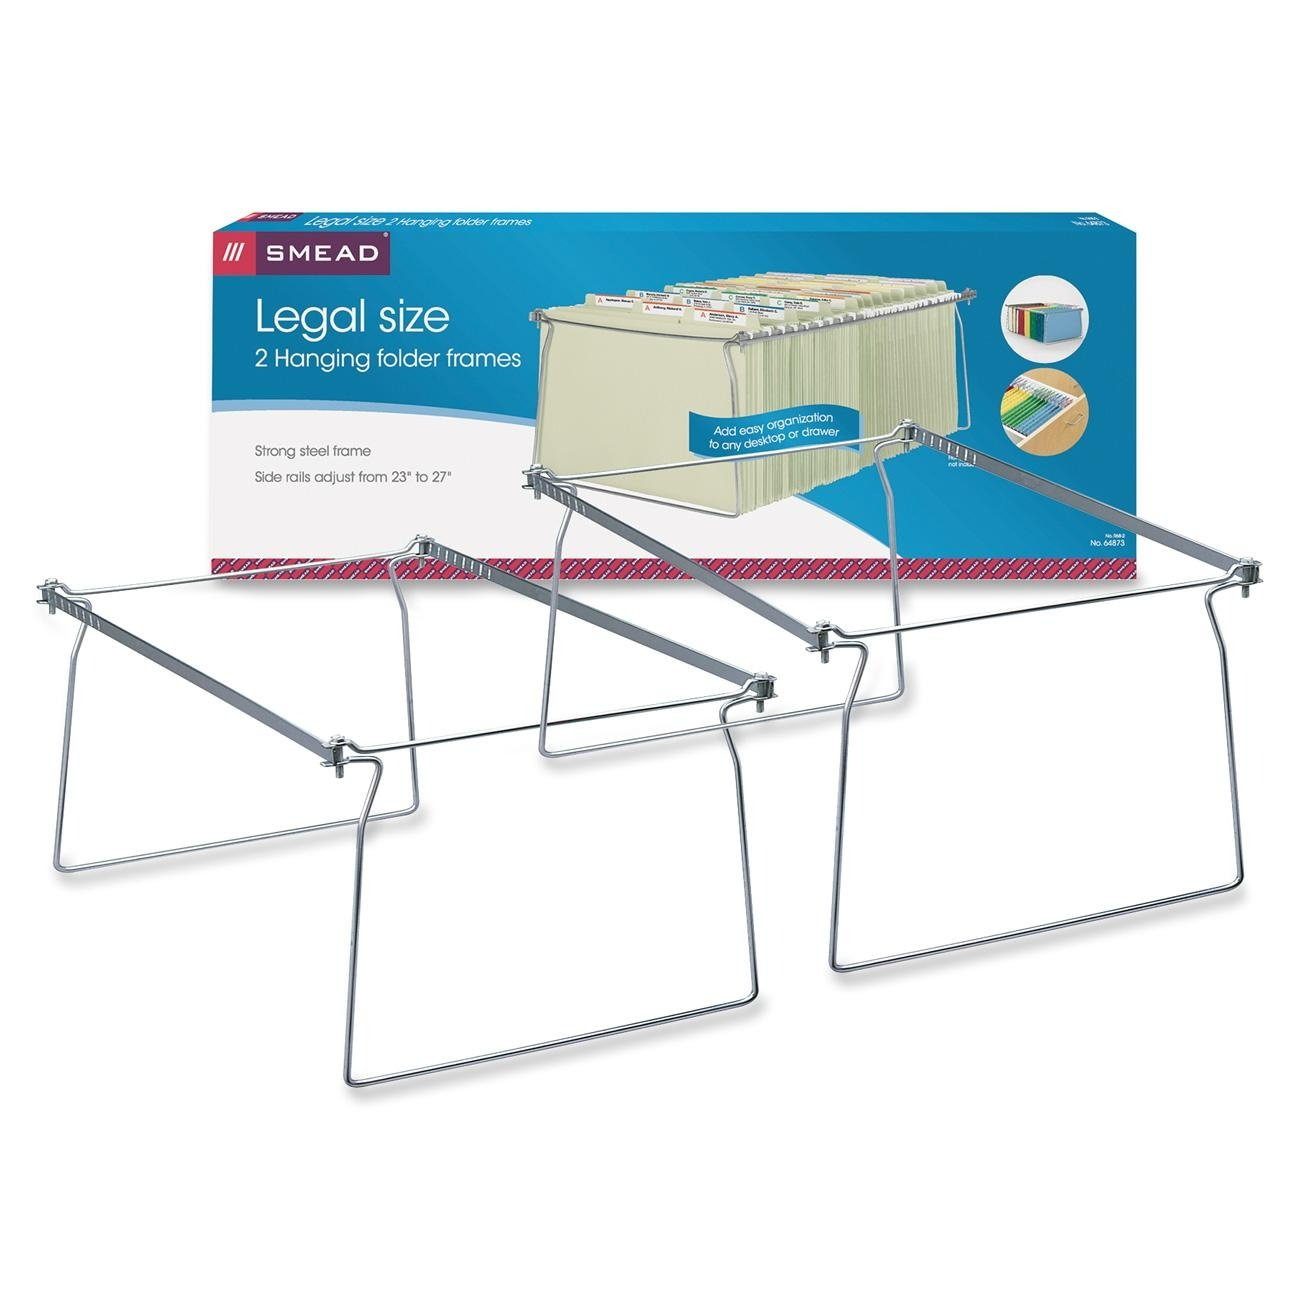 Hanging Folder Frame, Legal Size, 23-27 Long, Steel, 2/Pack 23-27 Long Smead Manufacturing Company 64873